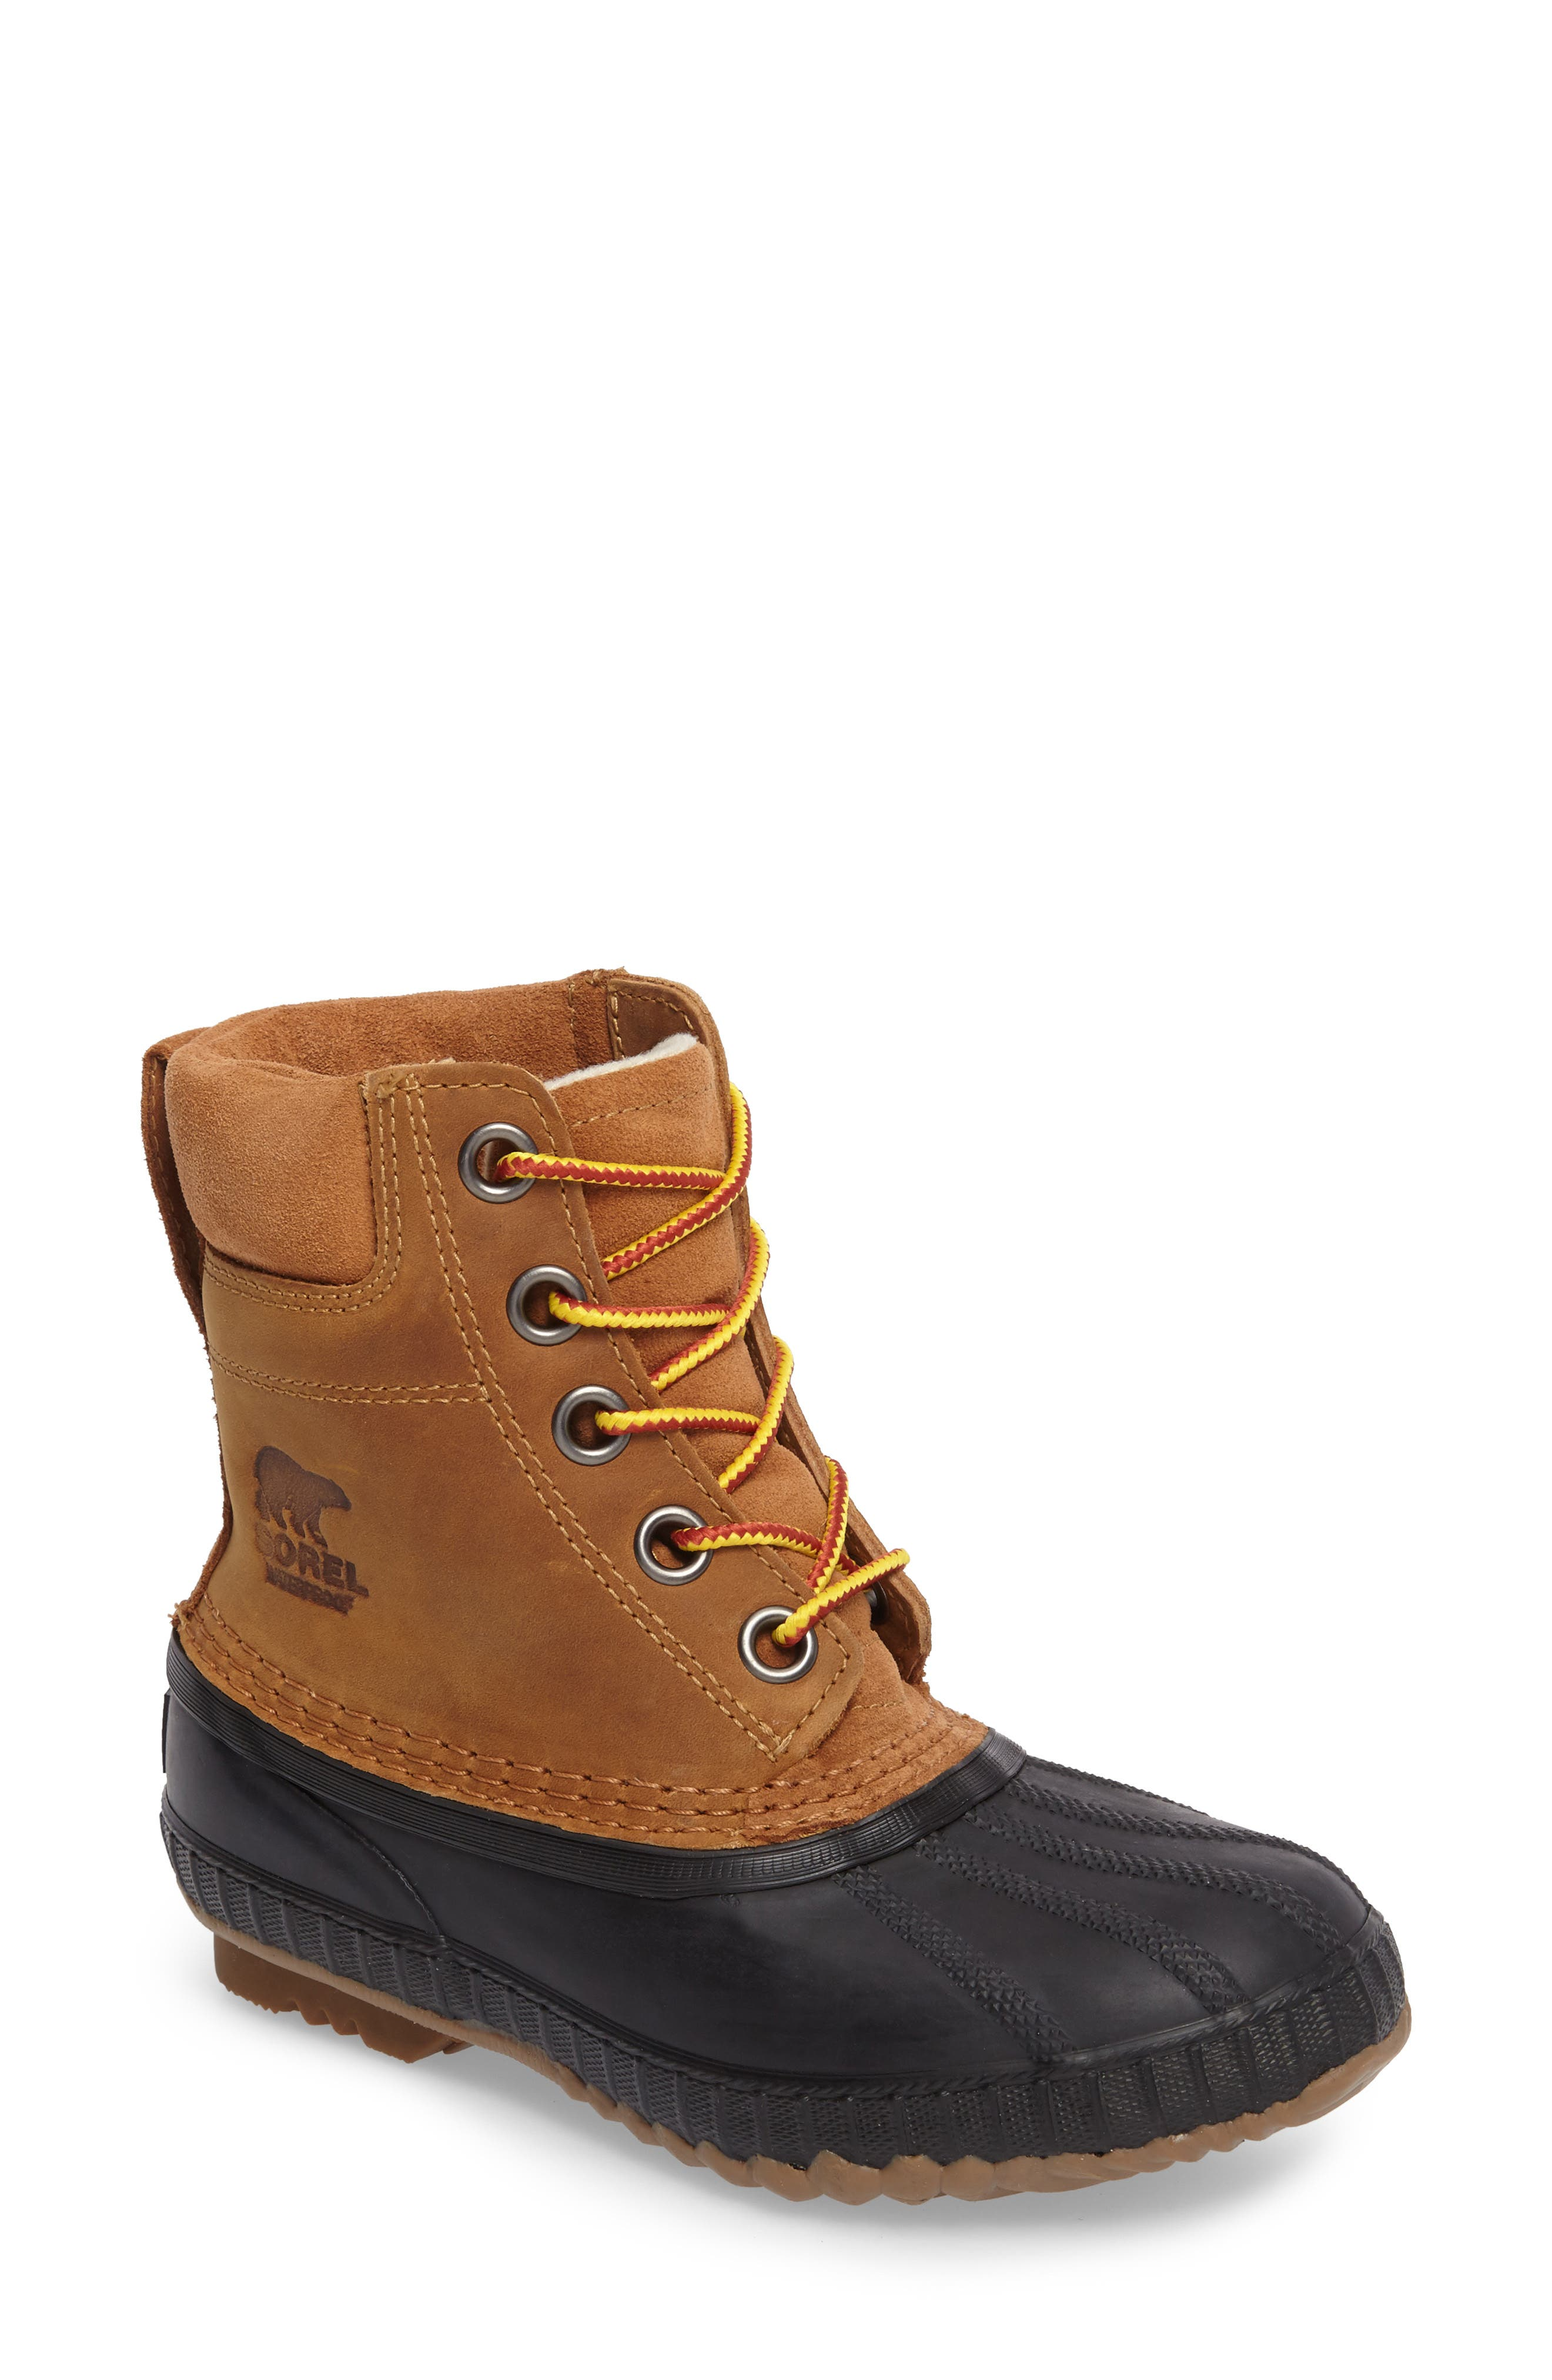 Cheyanne<sup>™</sup> II Waterproof Boot,                             Main thumbnail 1, color,                             Elk Black